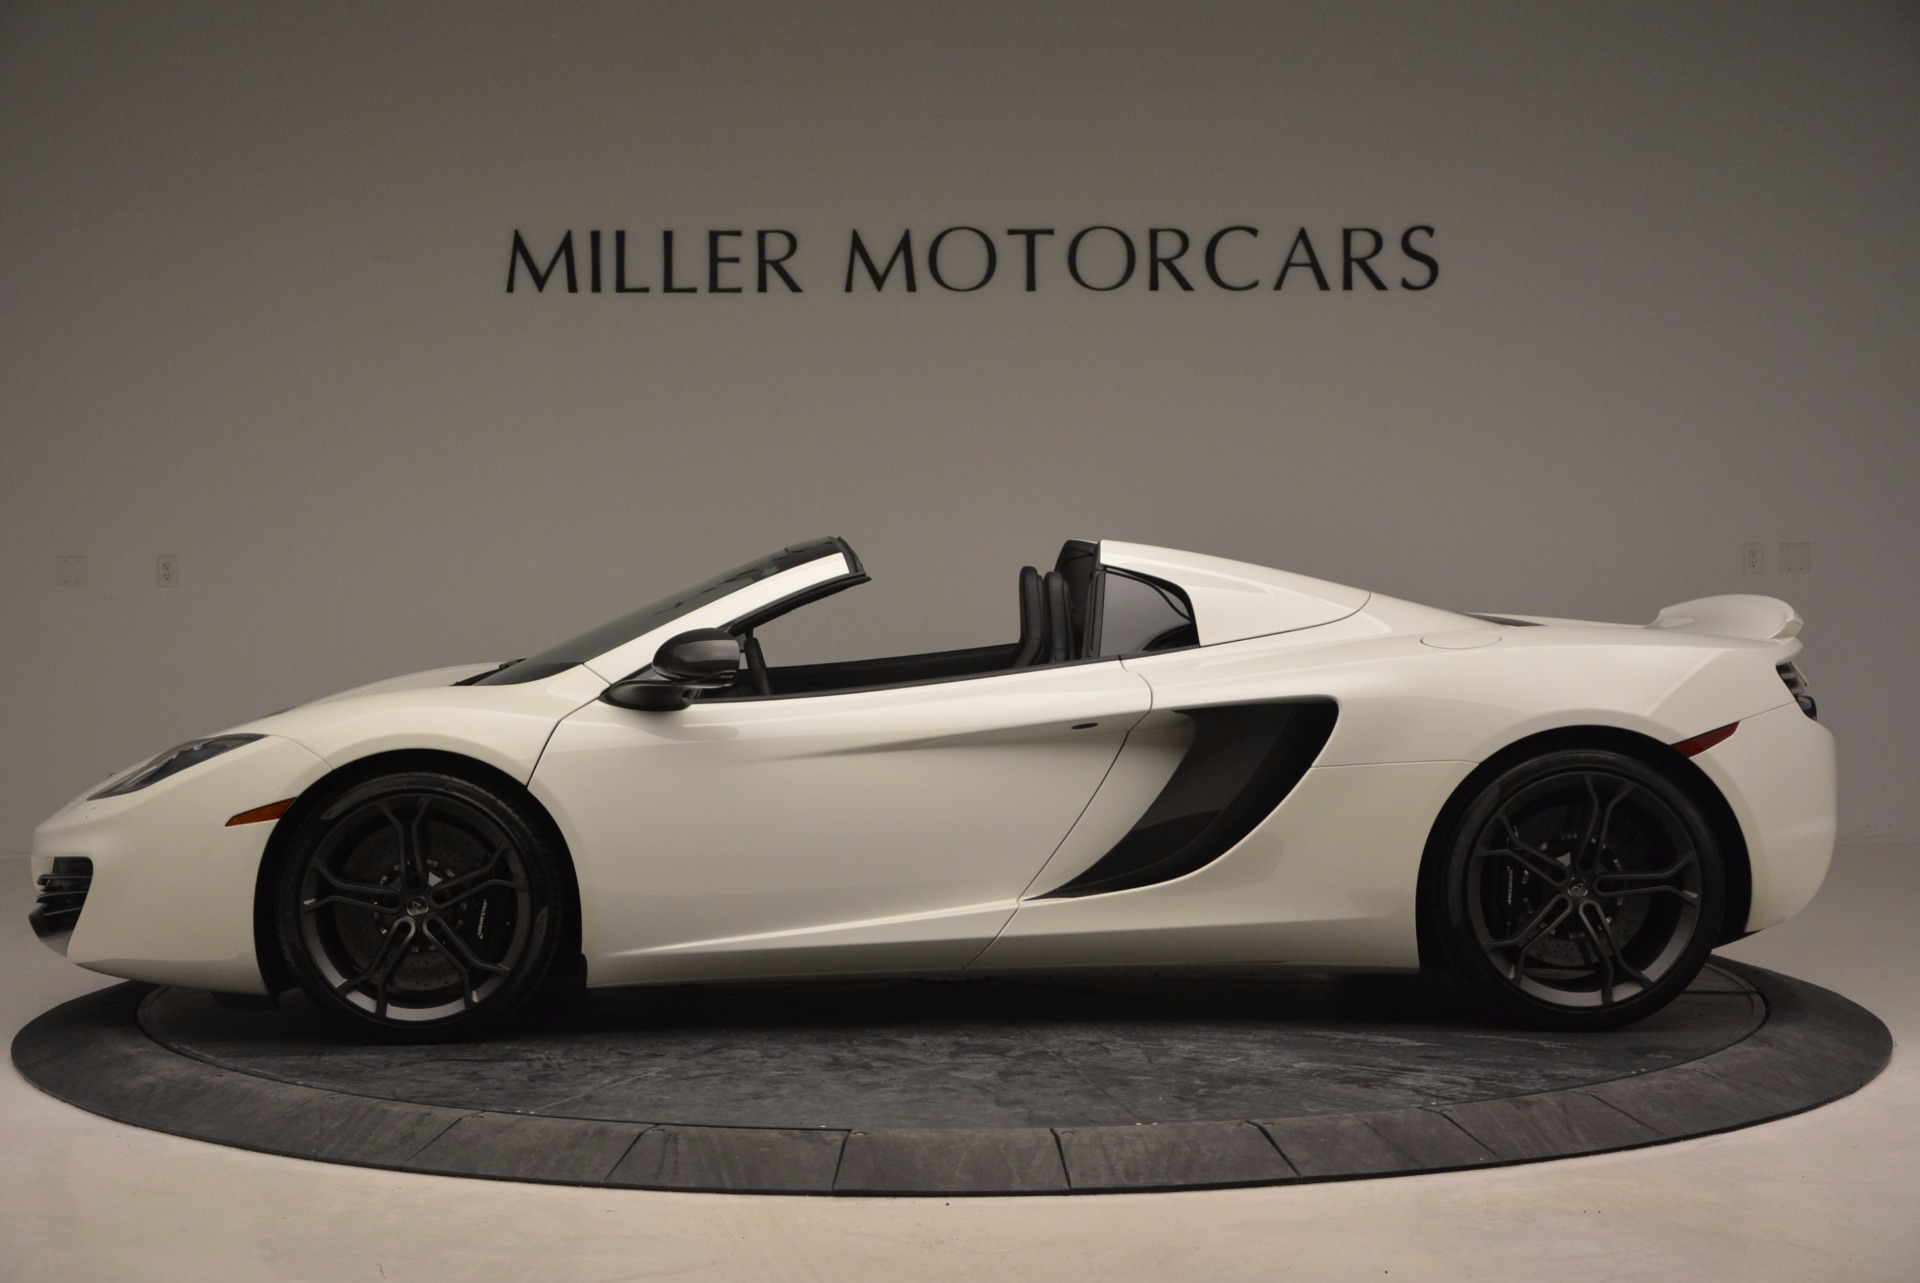 Used 2014 McLaren MP4-12C Spider For Sale In Greenwich, CT. Alfa Romeo of Greenwich, 3136 908_p3